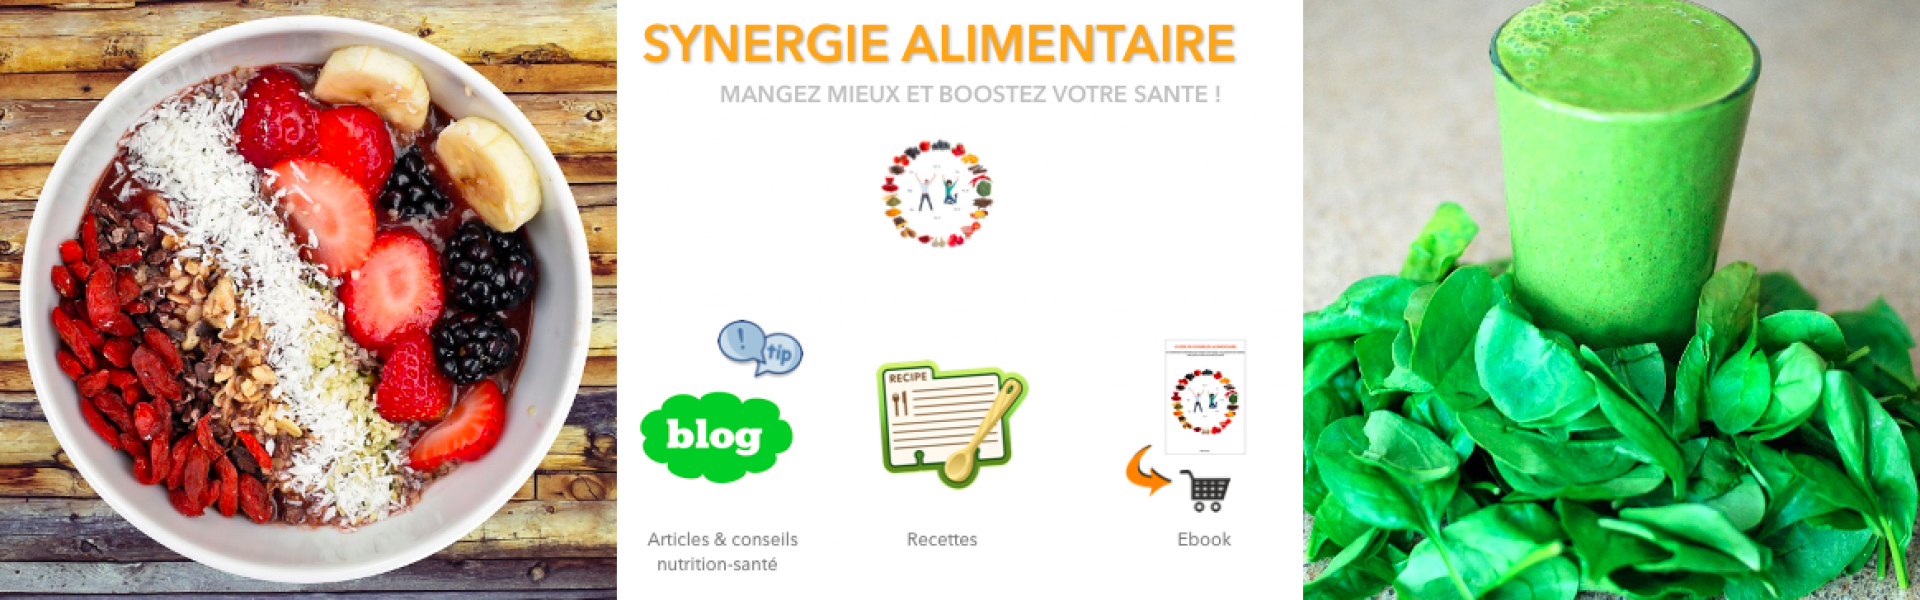 SYNERGIE ALIMENTAIRE